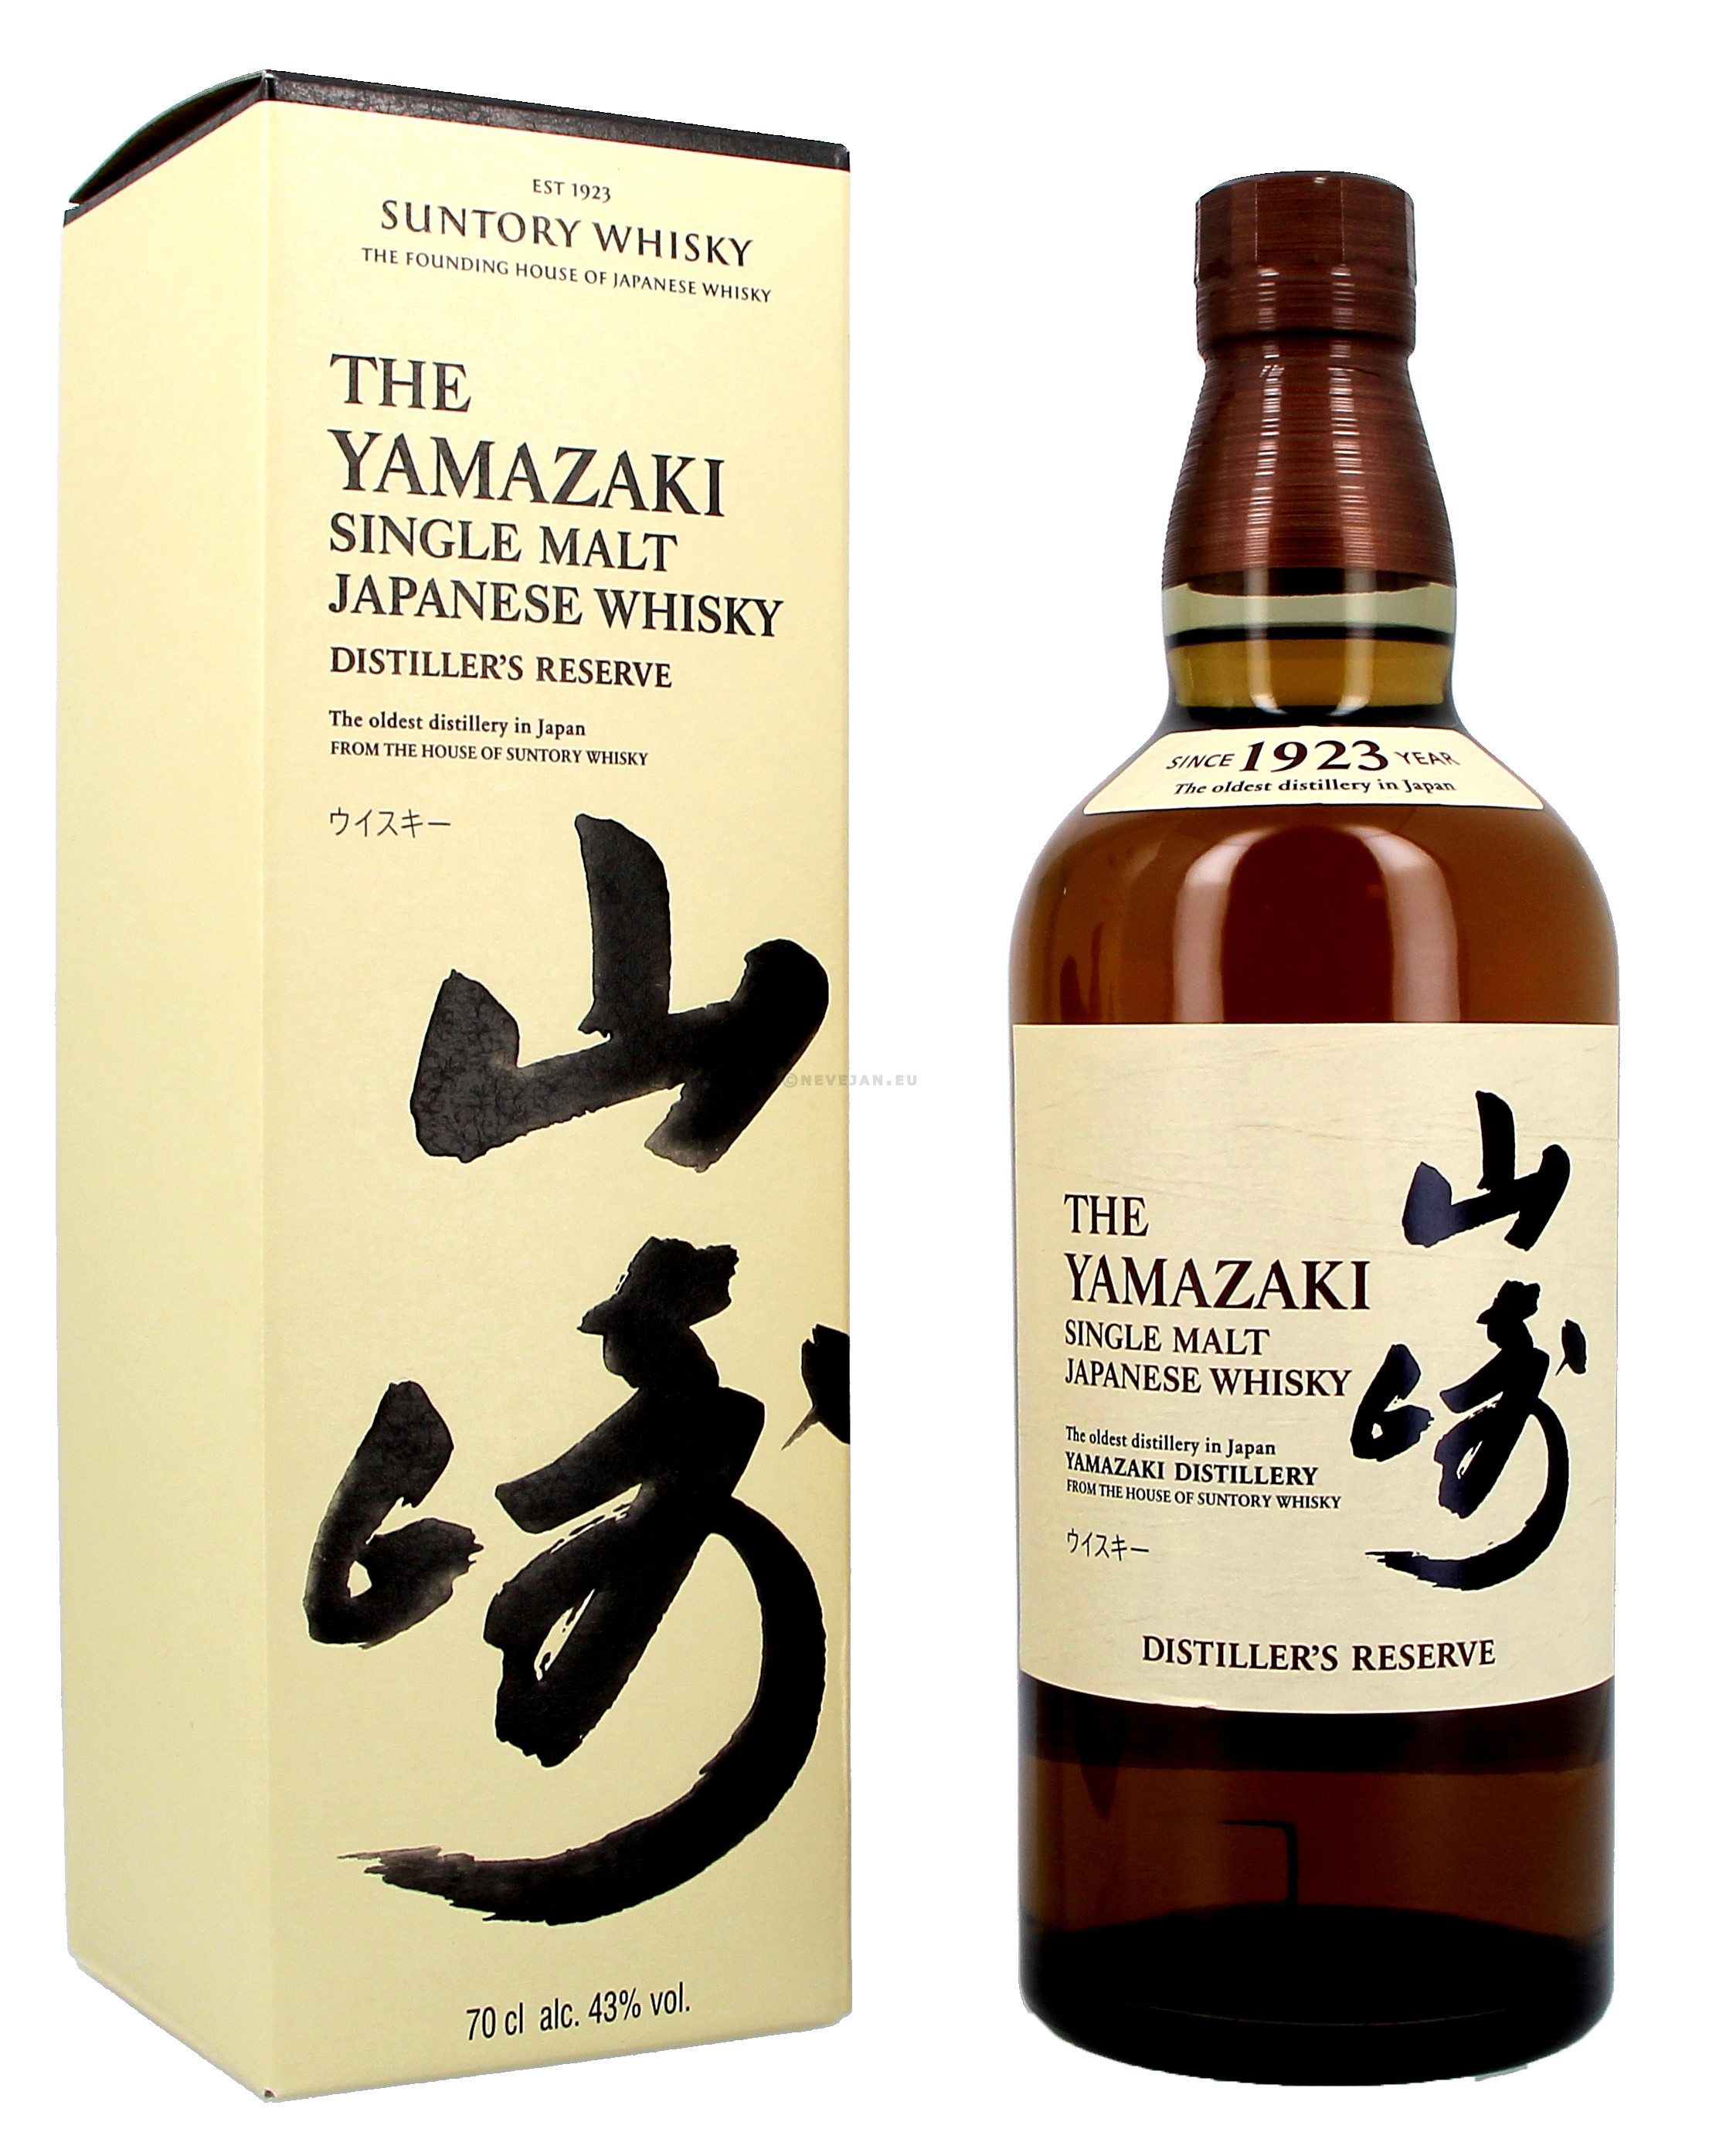 The Yamazaki Distiller's Reserve 70cl 43% Japanese Malt Whisky (Whisky)